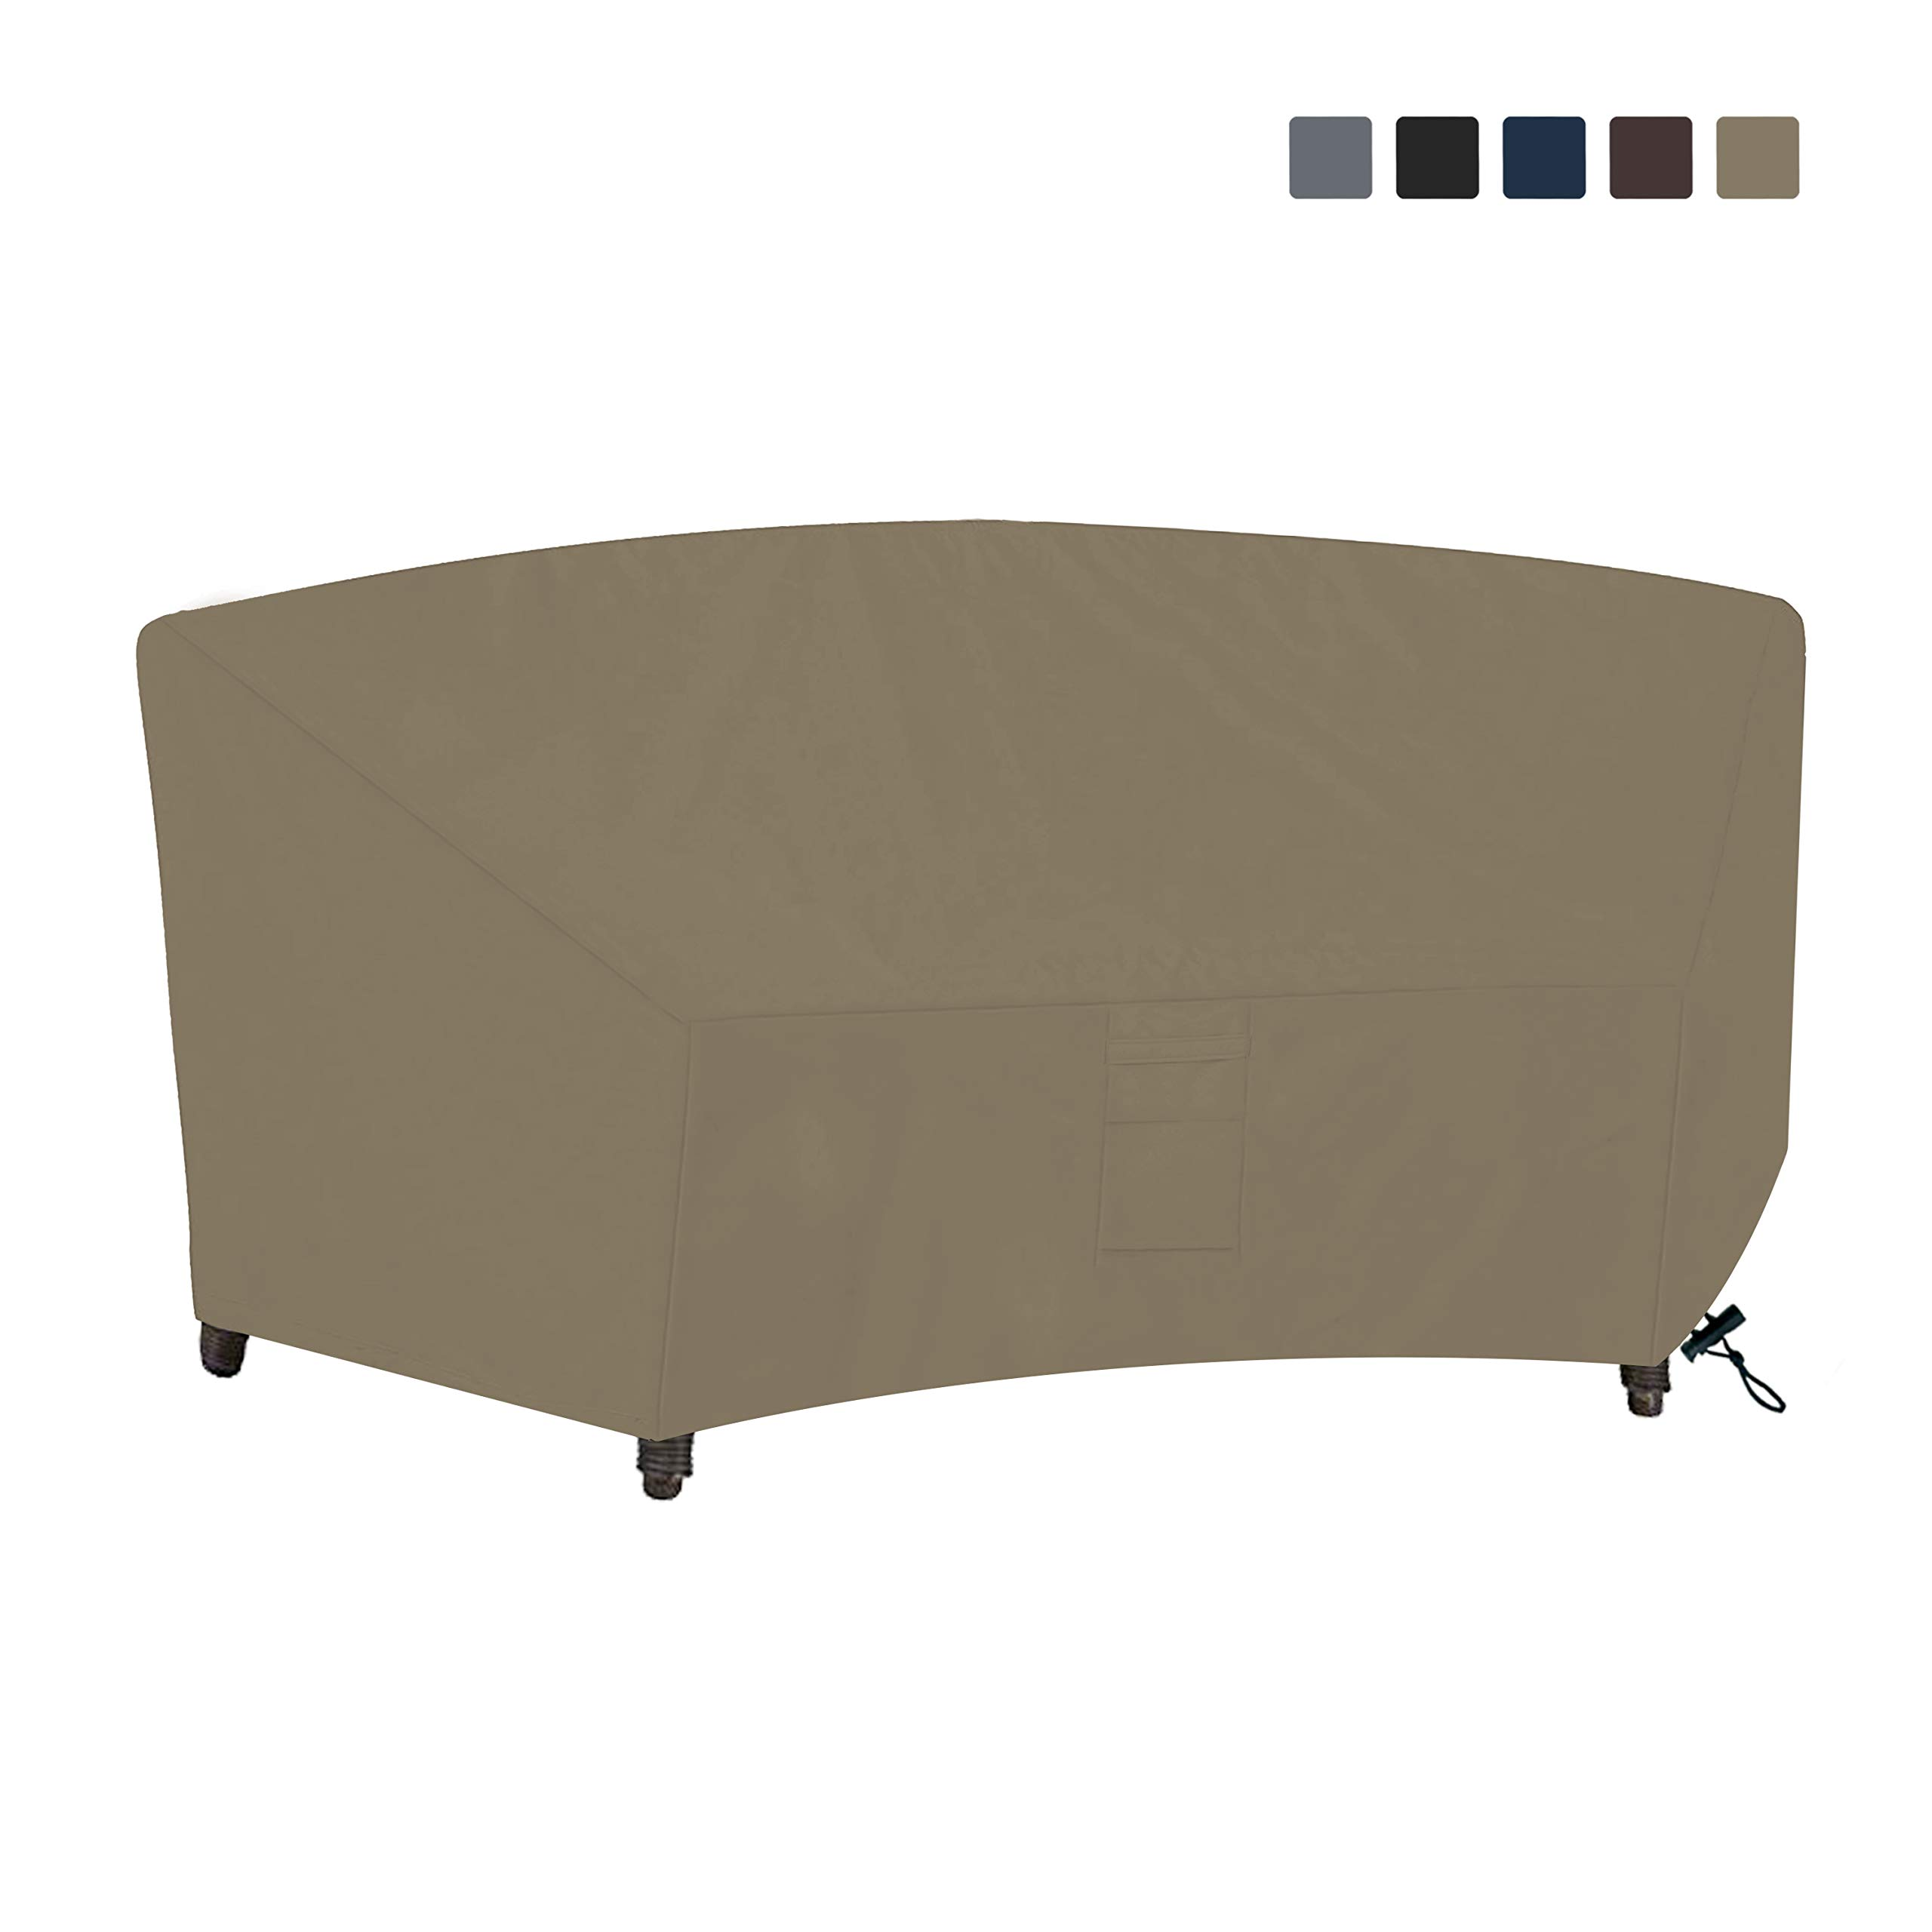 COVERS & ALL Curved Sofa Cover 12 Oz Waterproof - 100% UV & Weather Resistant Customize Outdoor Sofa Cover with Air Pockets and Drawstring with Snug Fit (90W x 34 D x 32 H x 46 FL, Beige)